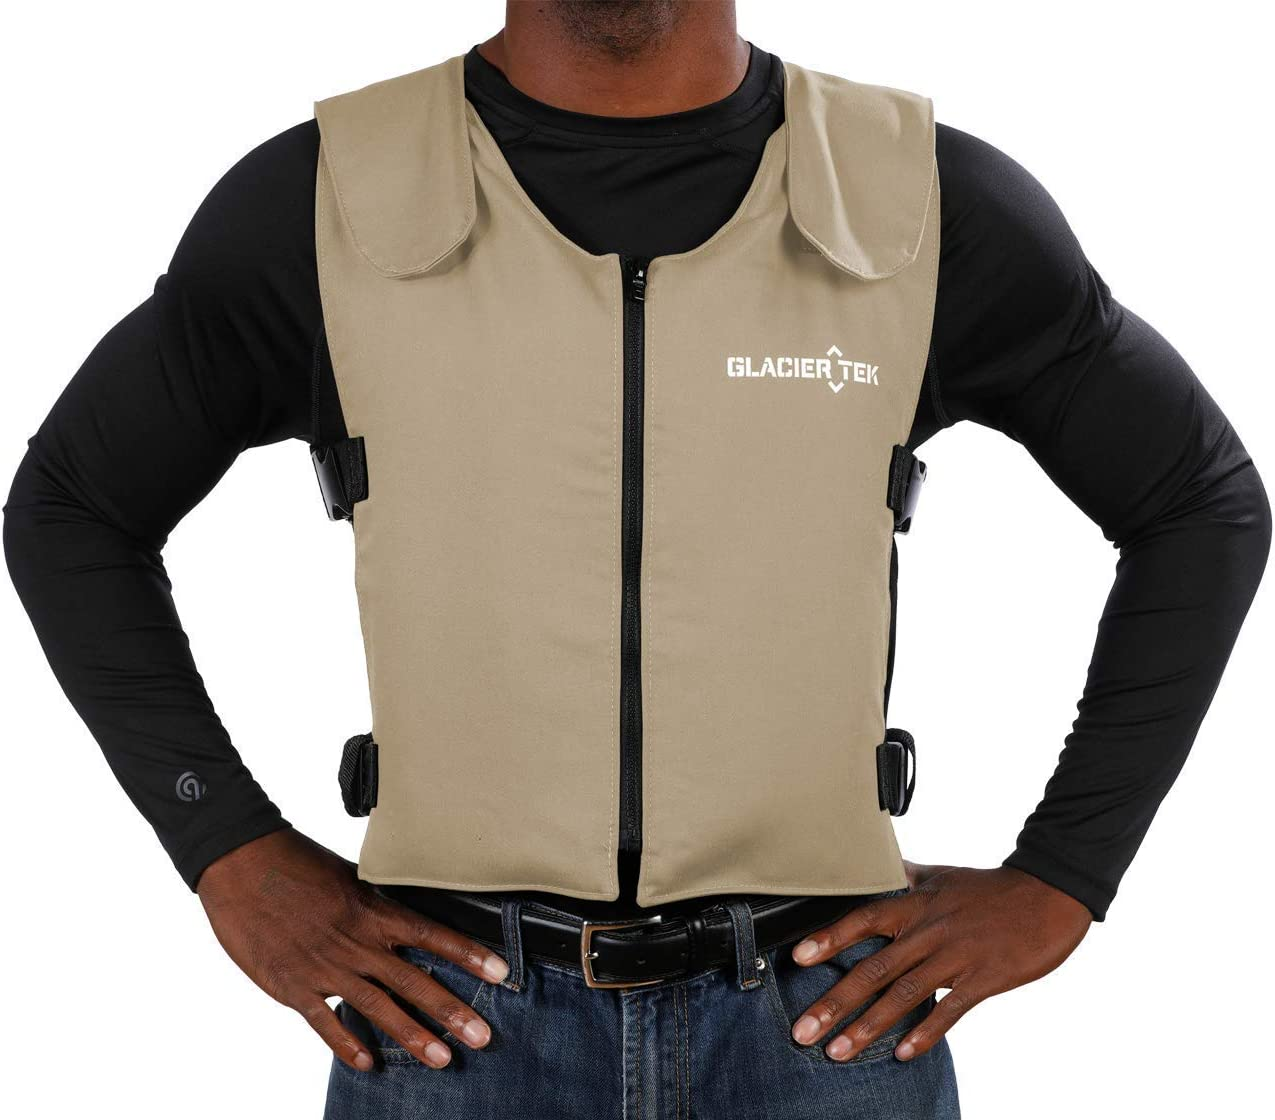 Glacier Tek Original Cool Vest with FR3 Flame-Retardant Banox Fabric and Nontoxic Cooling Packs